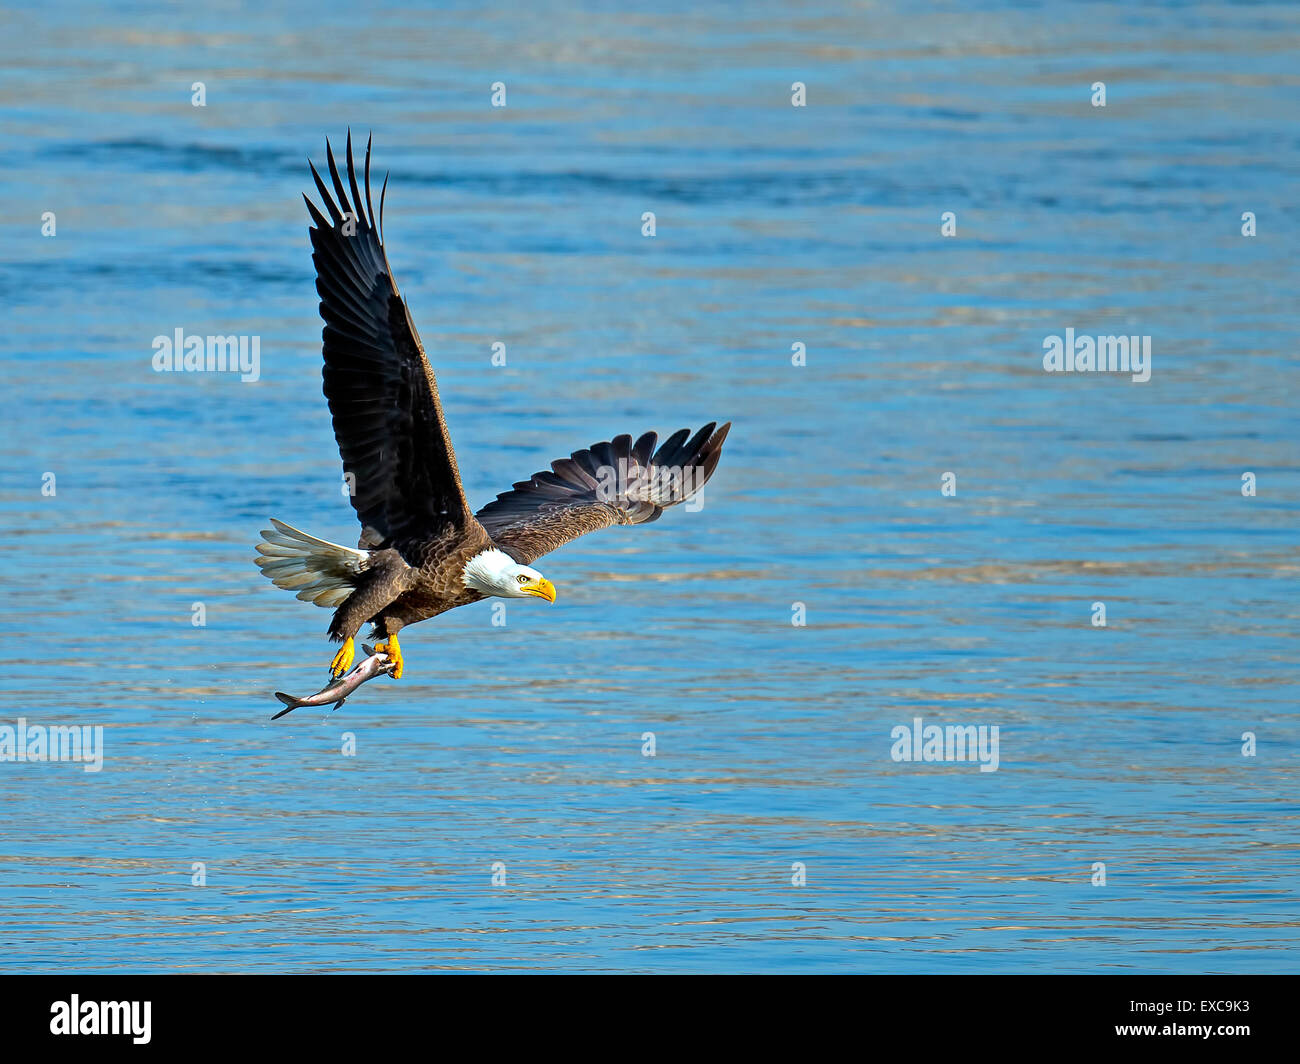 American Bald Eagle Flying with Fish Stock Photo